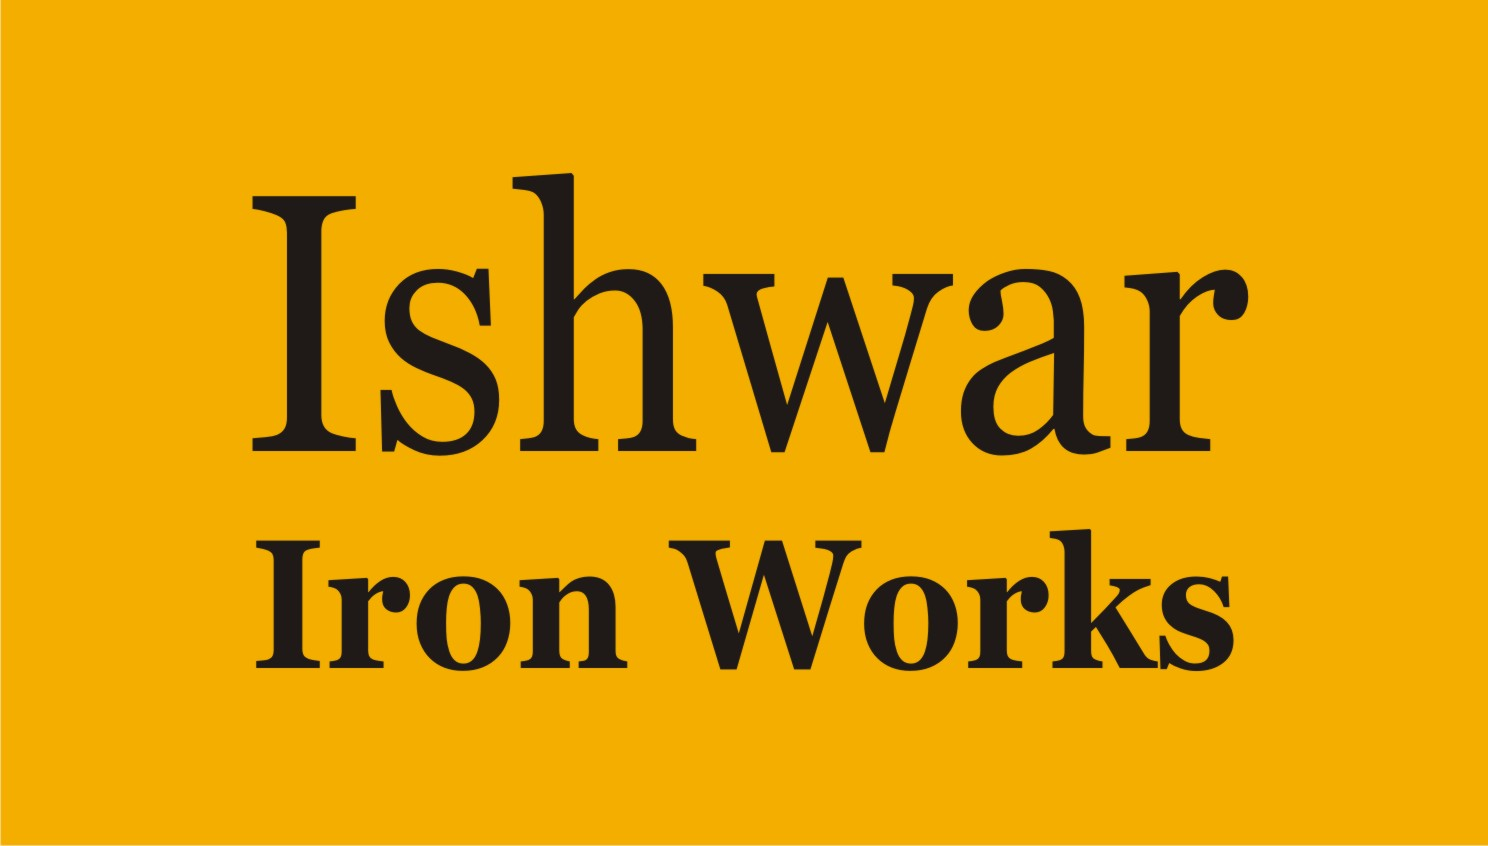 Ishwar Iron Works